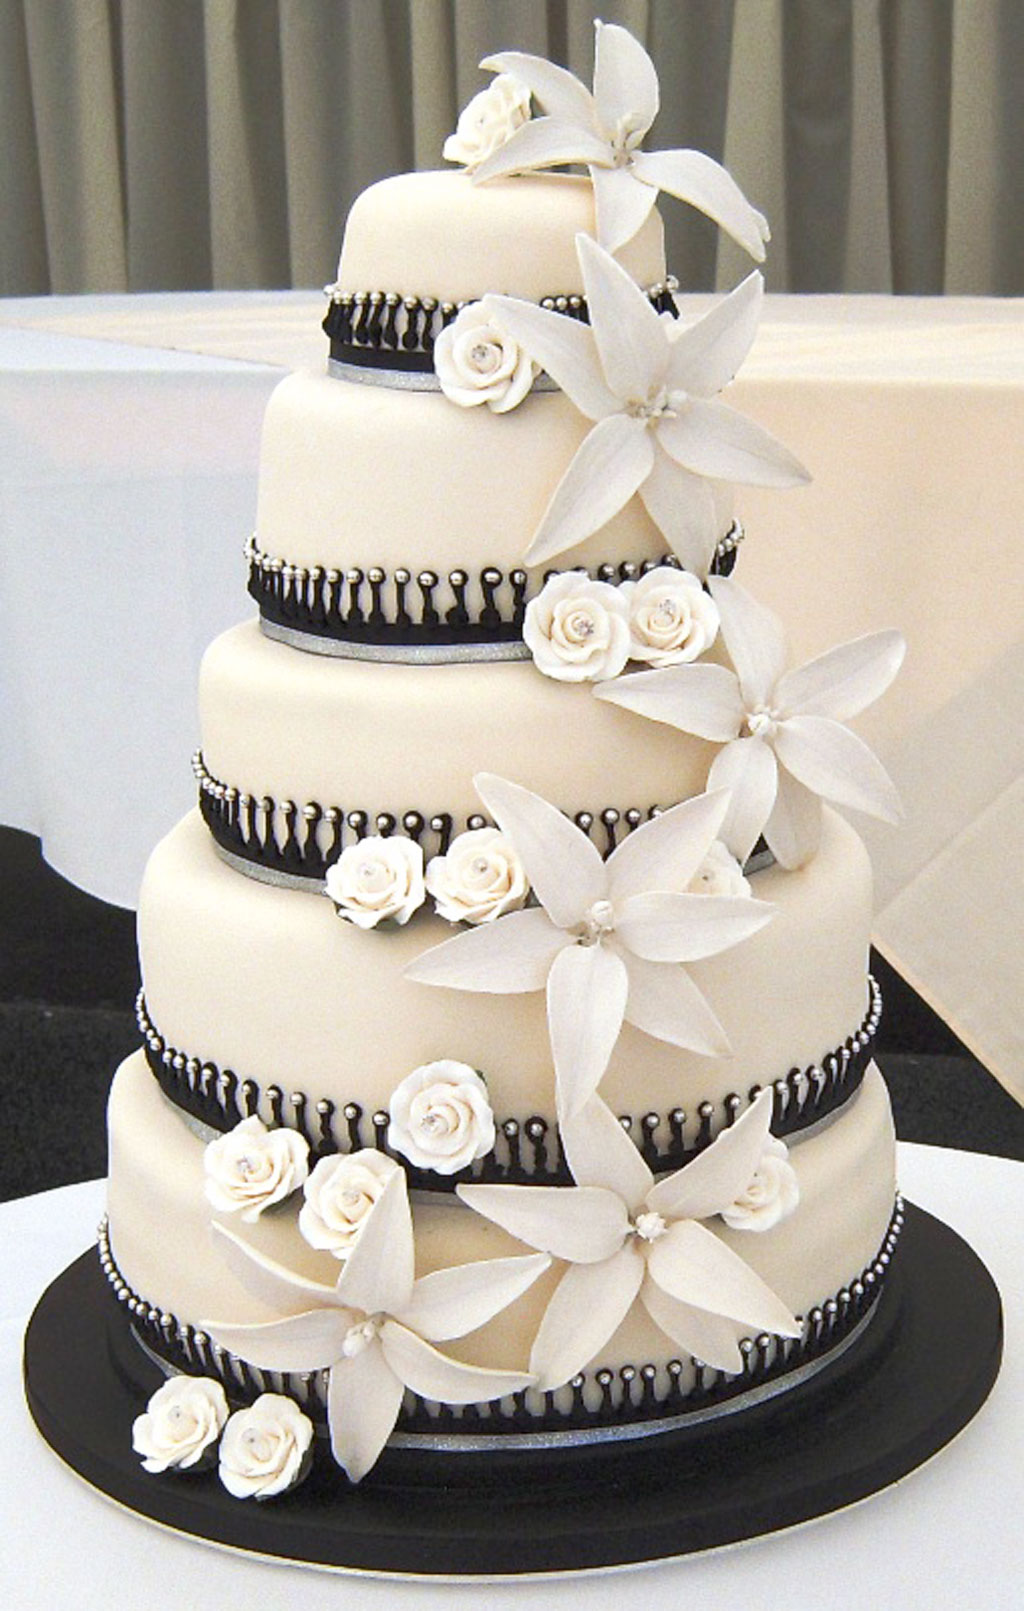 black and white wedding cakes designs black white wedding cake designs wedding cake cake ideas 11849